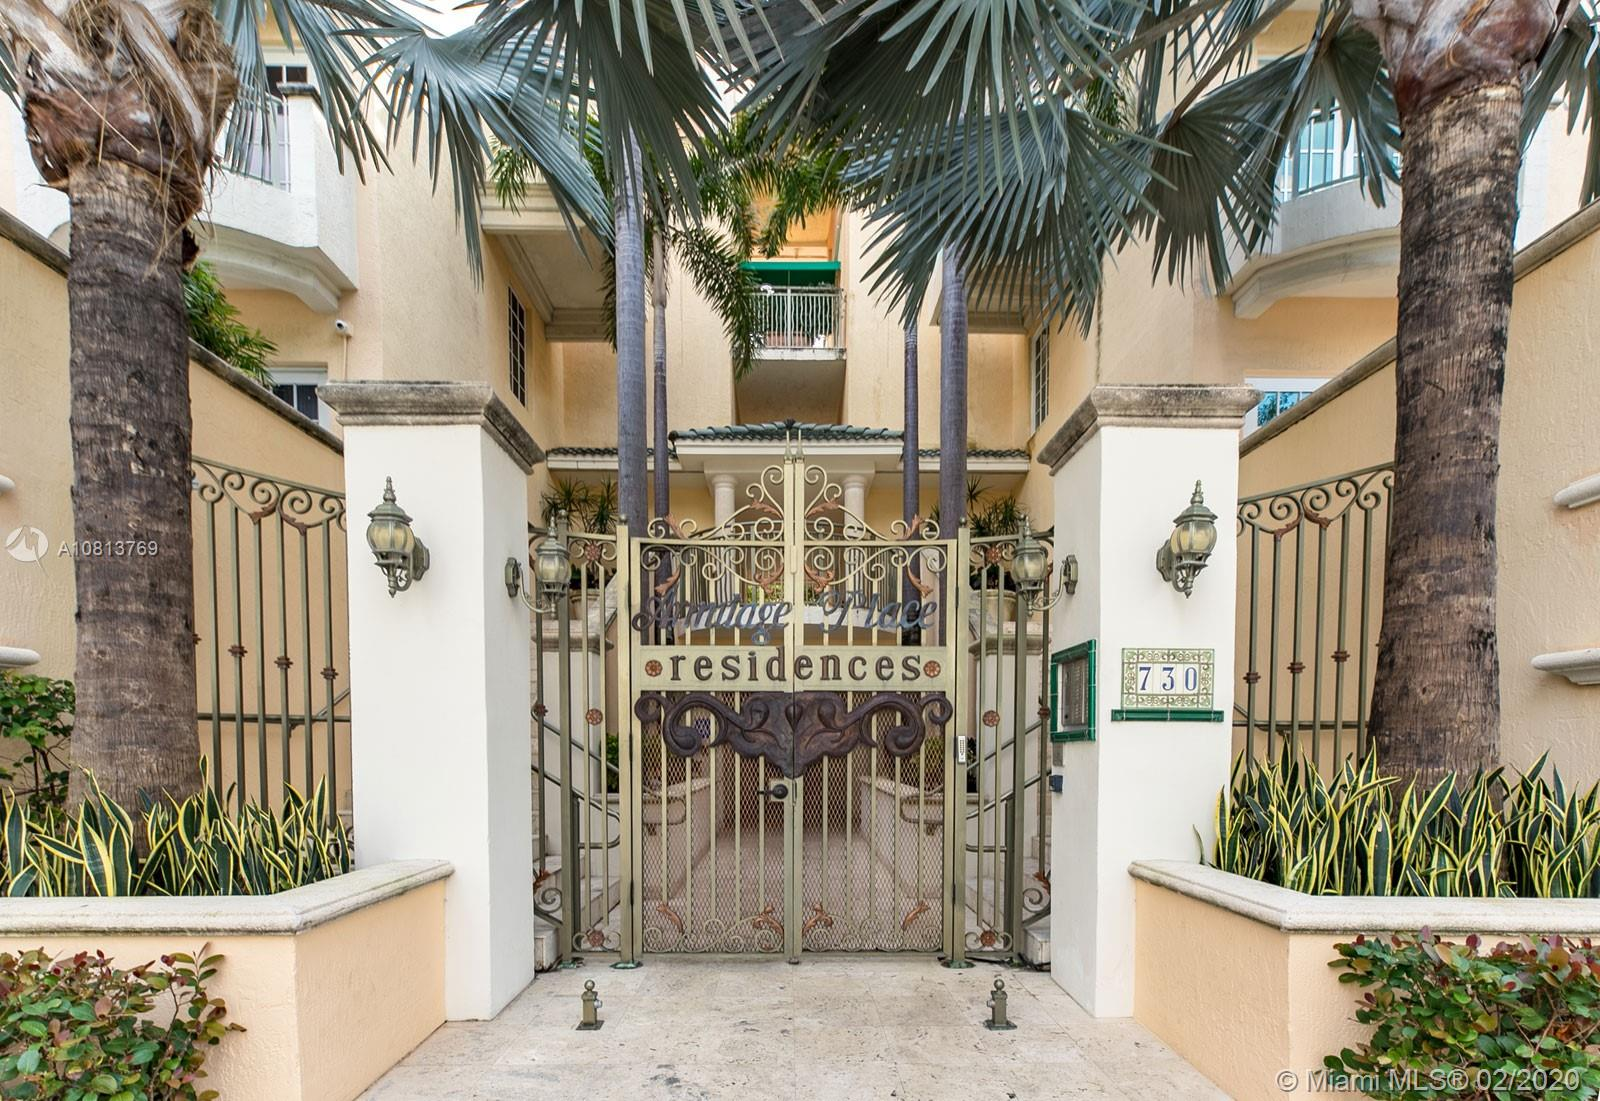 730  3rd St #102 For Sale A10813769, FL